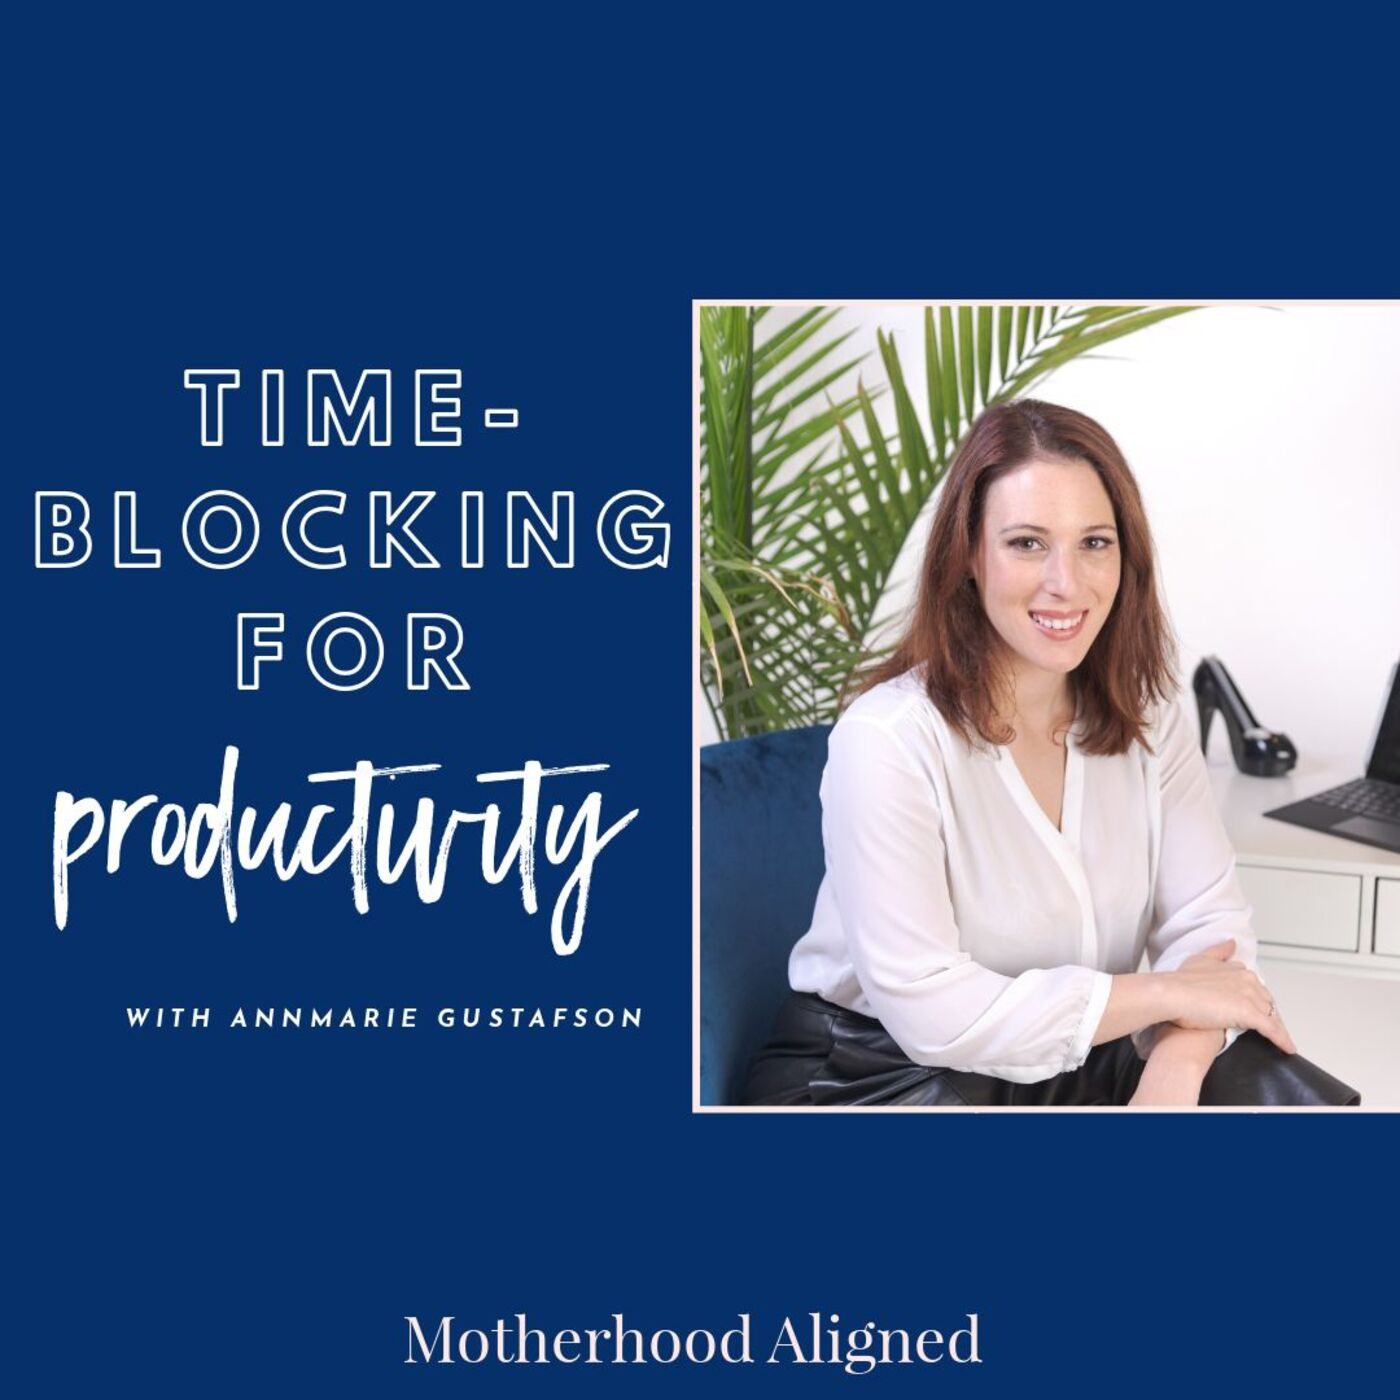 Time-Blocking for Productivity with Annmarie Gustafson